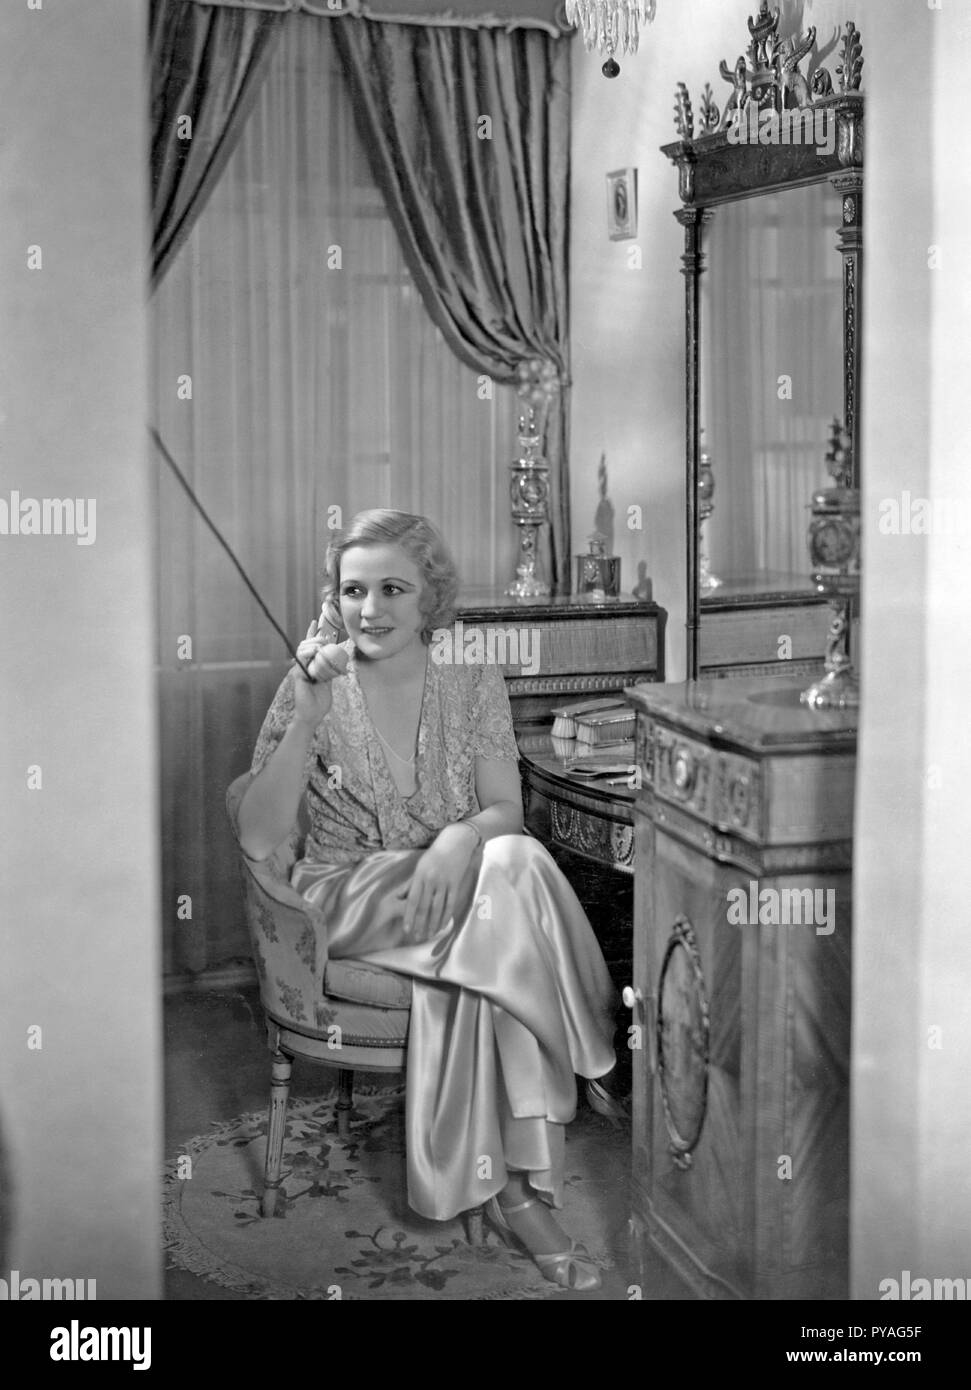 American actress in the 1930s. American actress Wynne Gibson, 1898-1987. She was contracted with movie company Paramount and made some 50 films between 1929 and 1956. Pictured here at home having a telephone conversation. 1930s - Stock Image